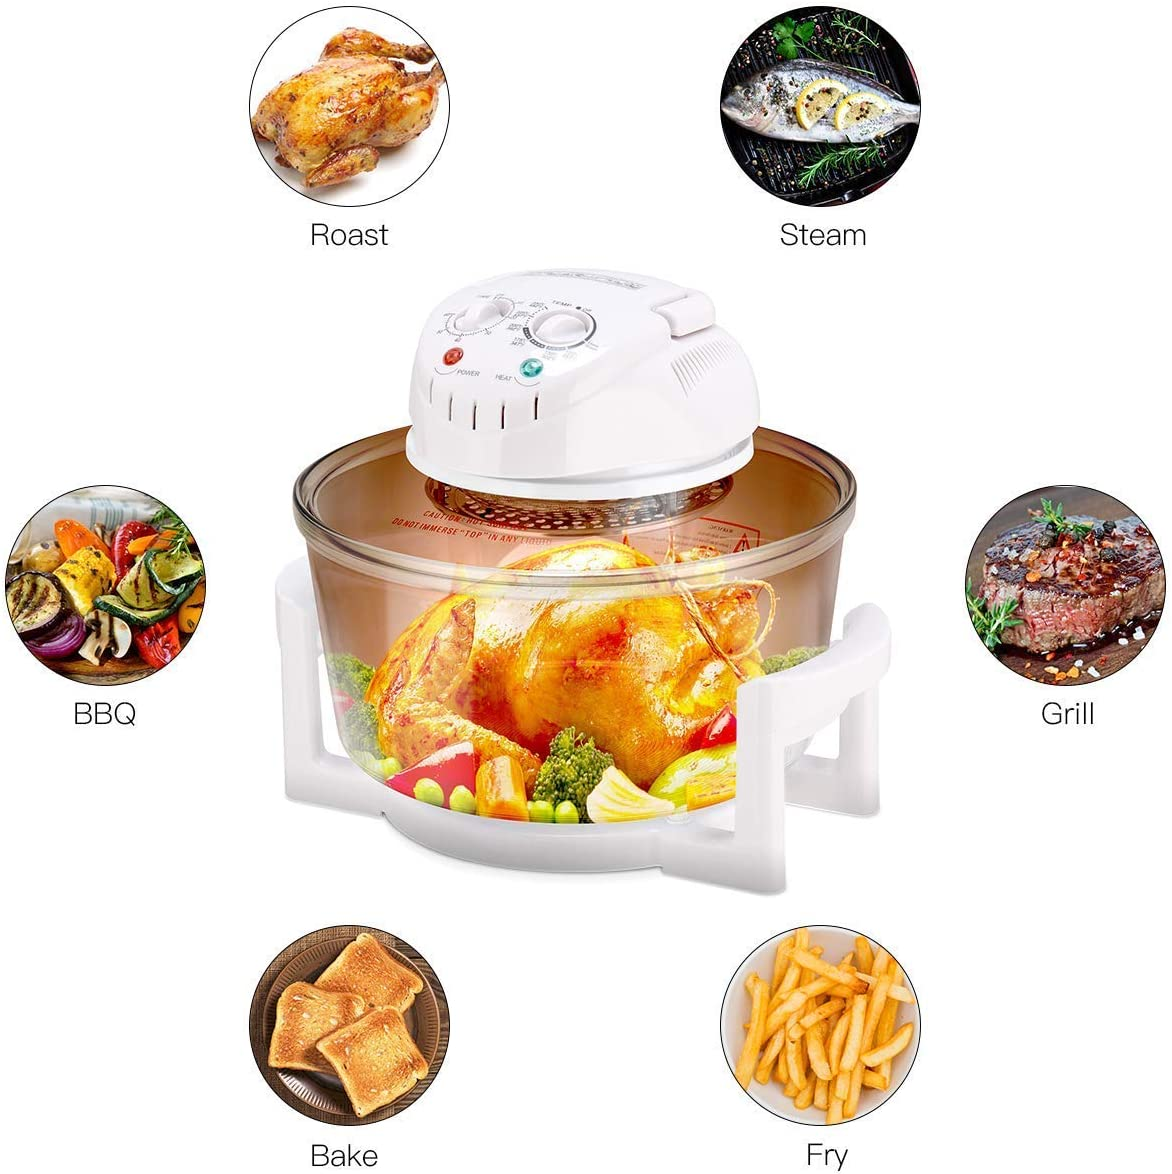 Enhanced Halogen Oven, 1400W 12L Air Fryer with Self-Cleaning Function, Adjustable Temperature and Timer, Including Extension Ring for 17L Rack Tray, High Rack, Low Rack und Tong